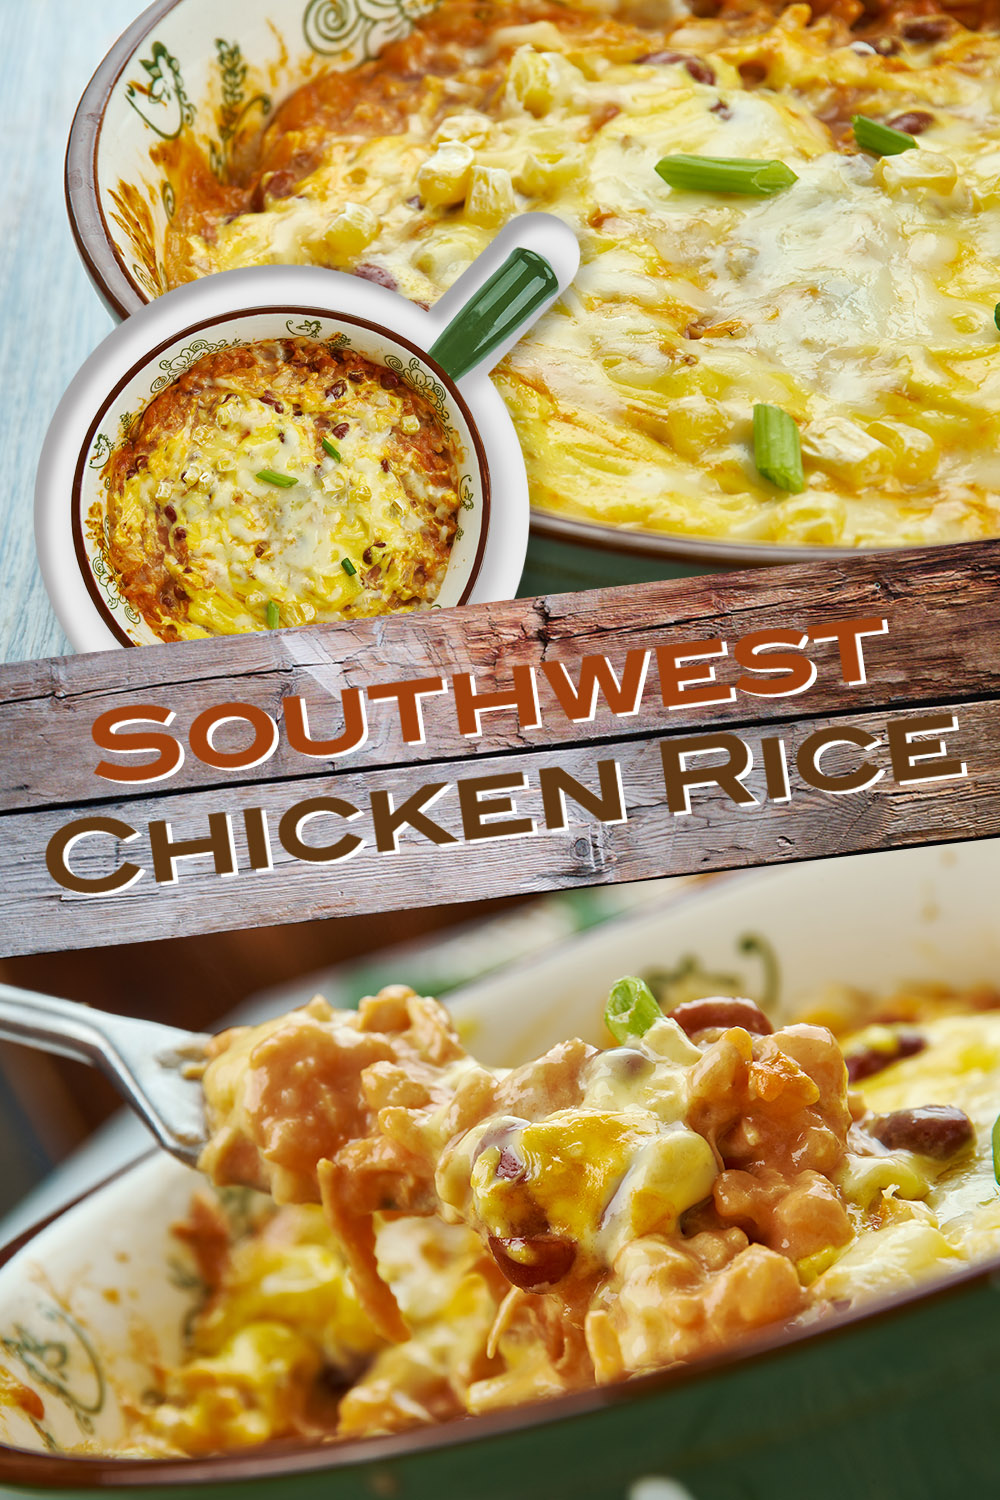 Southwest Chicken Rice